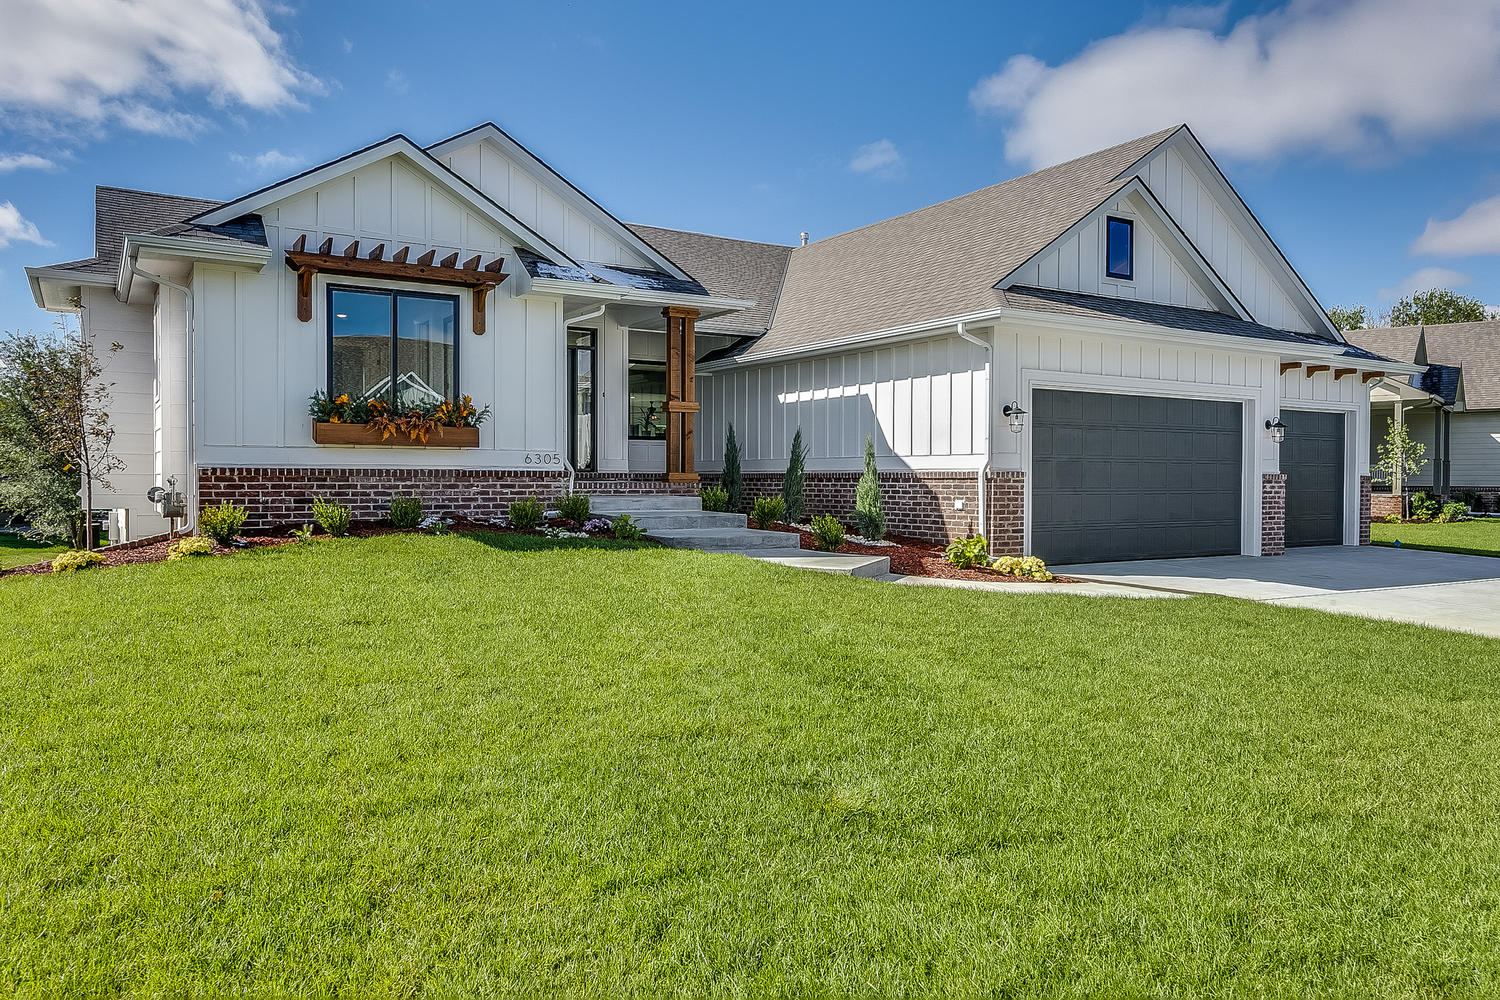 For sale 6305 driftwood wichita ks 67205 557946 jrussell communities for Exterior construction wichita ks